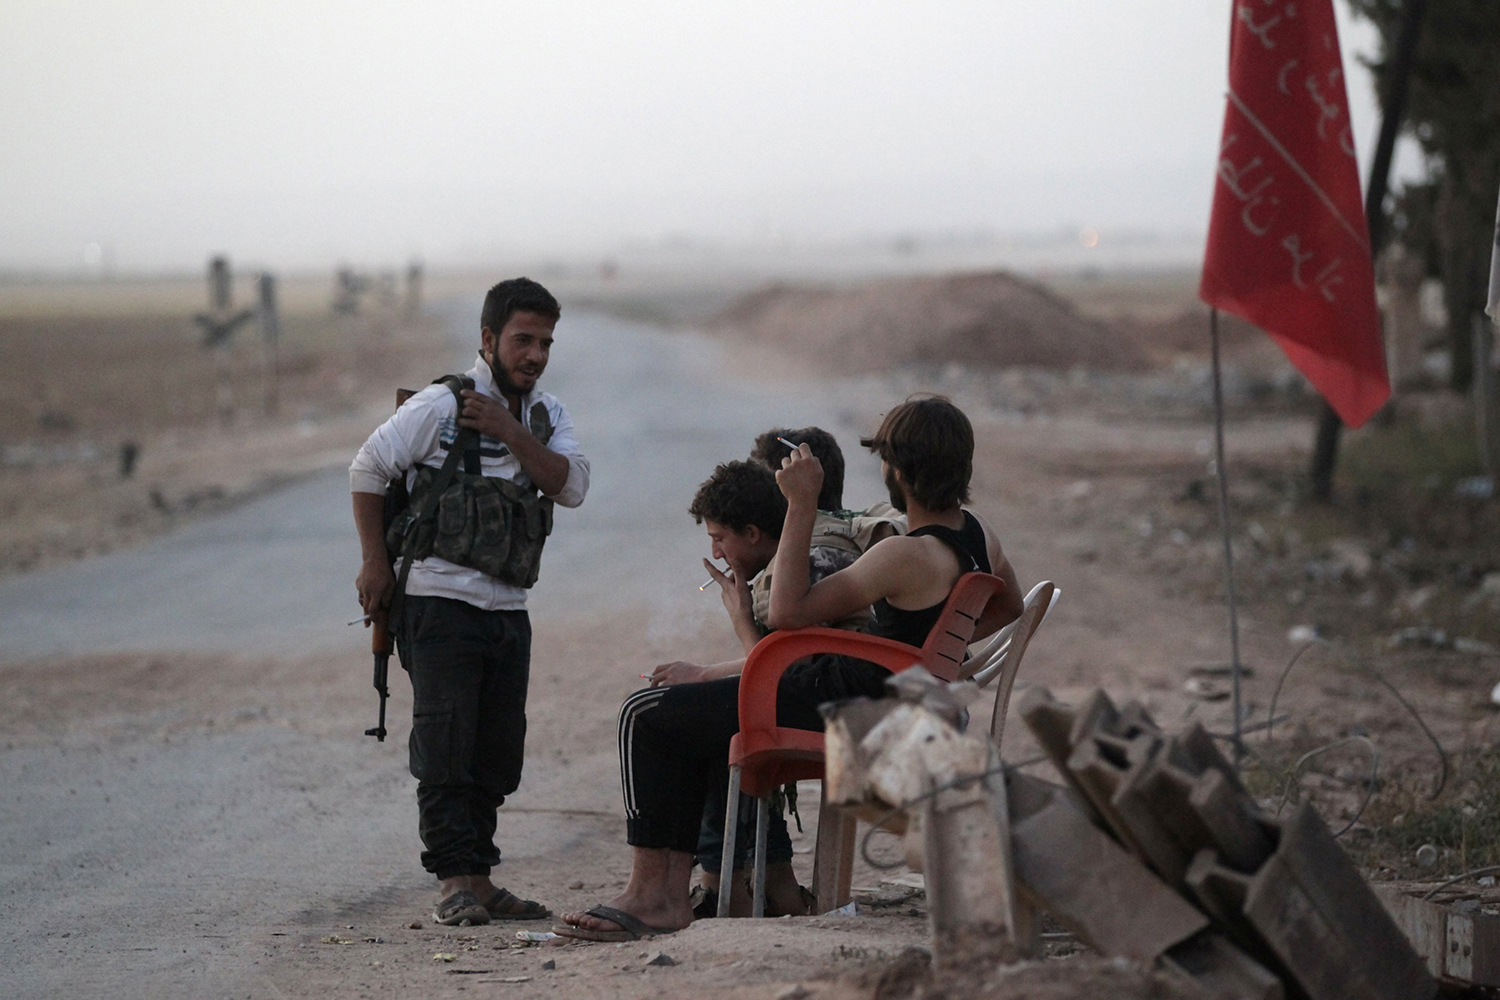 ALEPPO 2016-10-02 Rebel fighters man a checkpoint on the outskirts of al-Rai town, northern Aleppo countryside, Syria October 2, 2016. REUTERS/Khalil Ashawi Photo: / REUTERS / TT / kod 72000